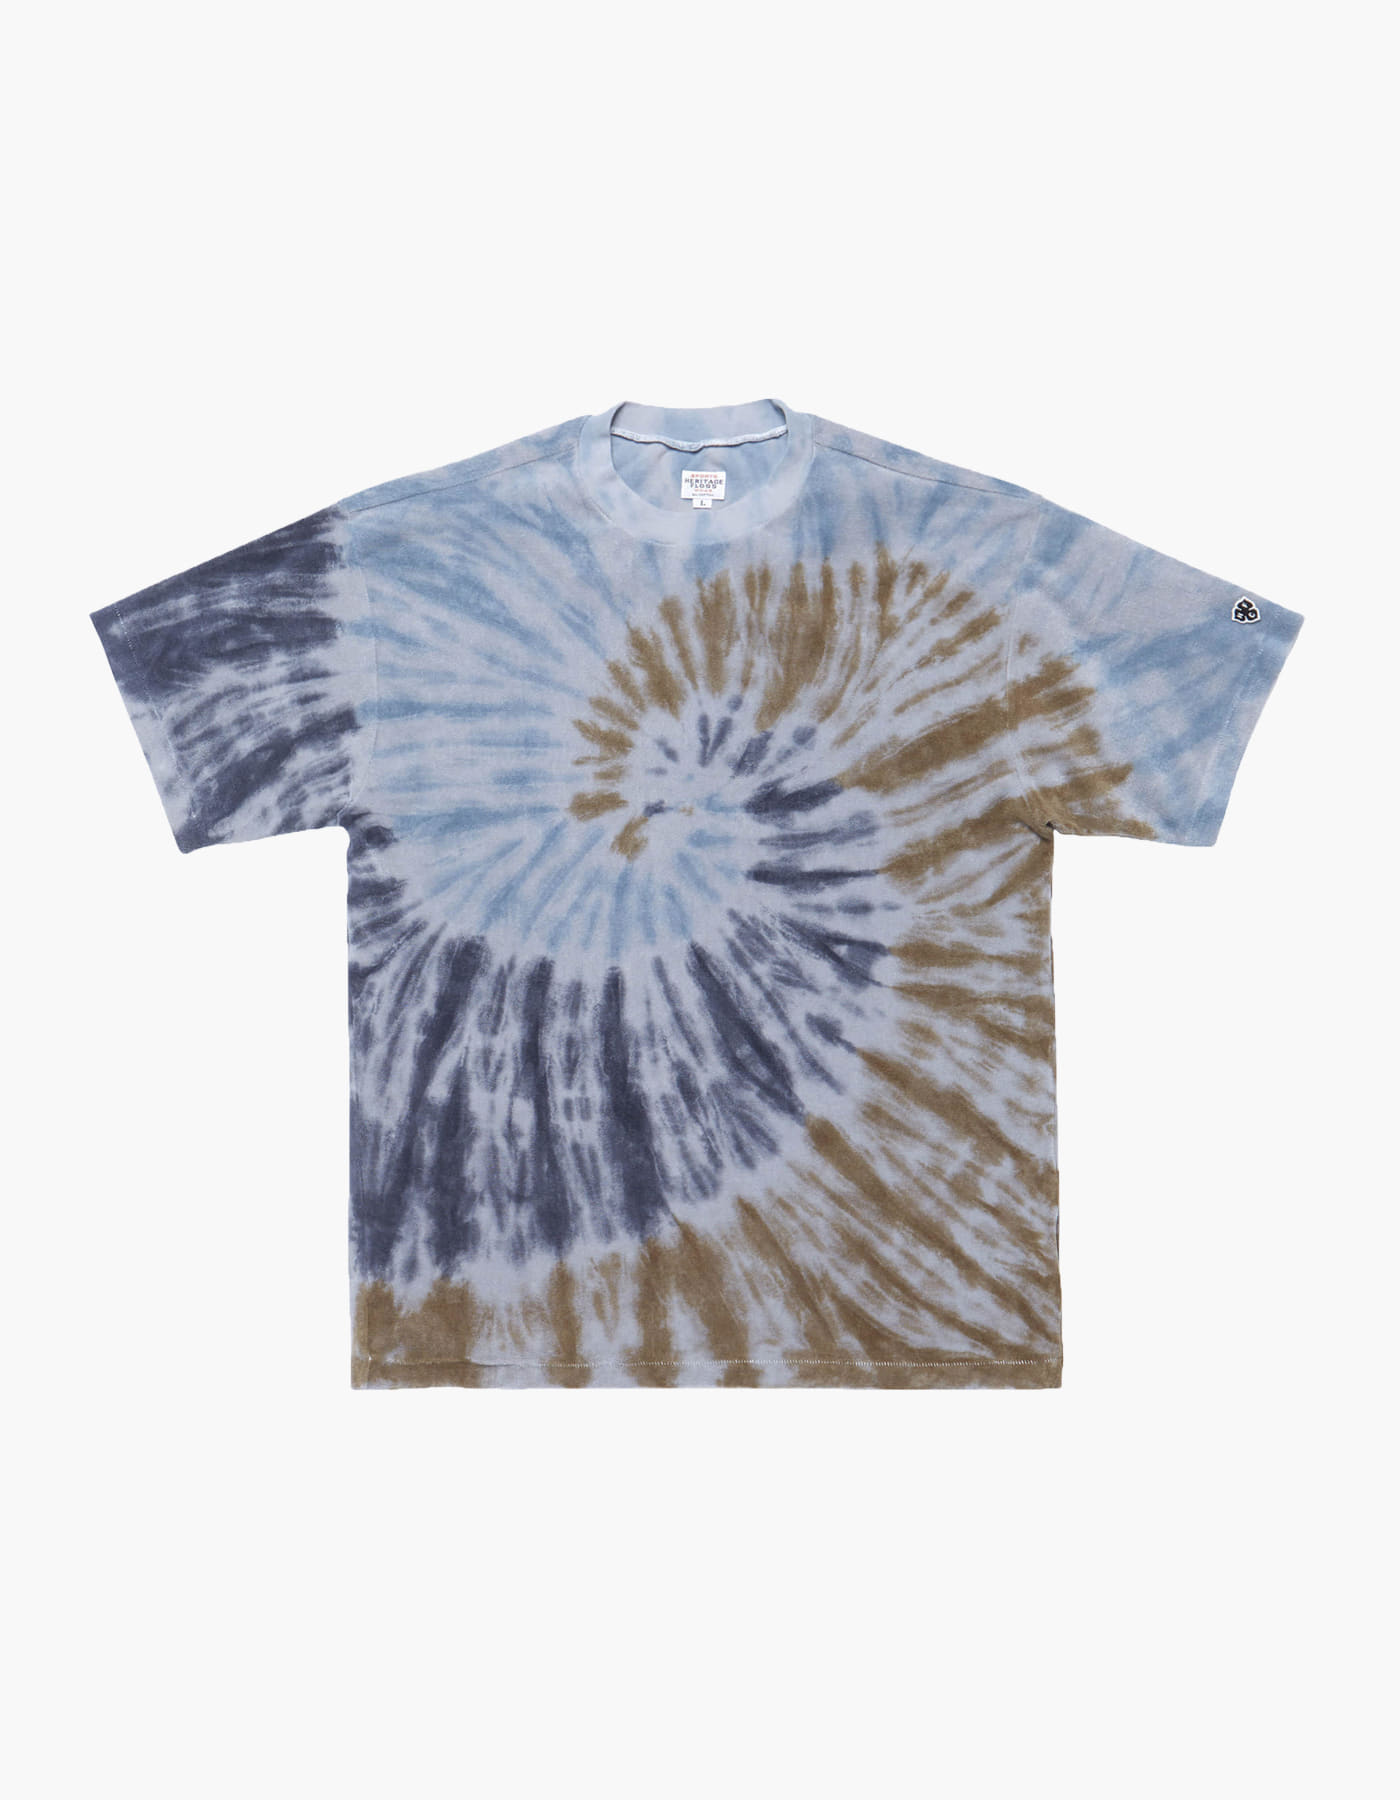 TOWEL GYM TIE-DYE T-SHIRTS / GREY